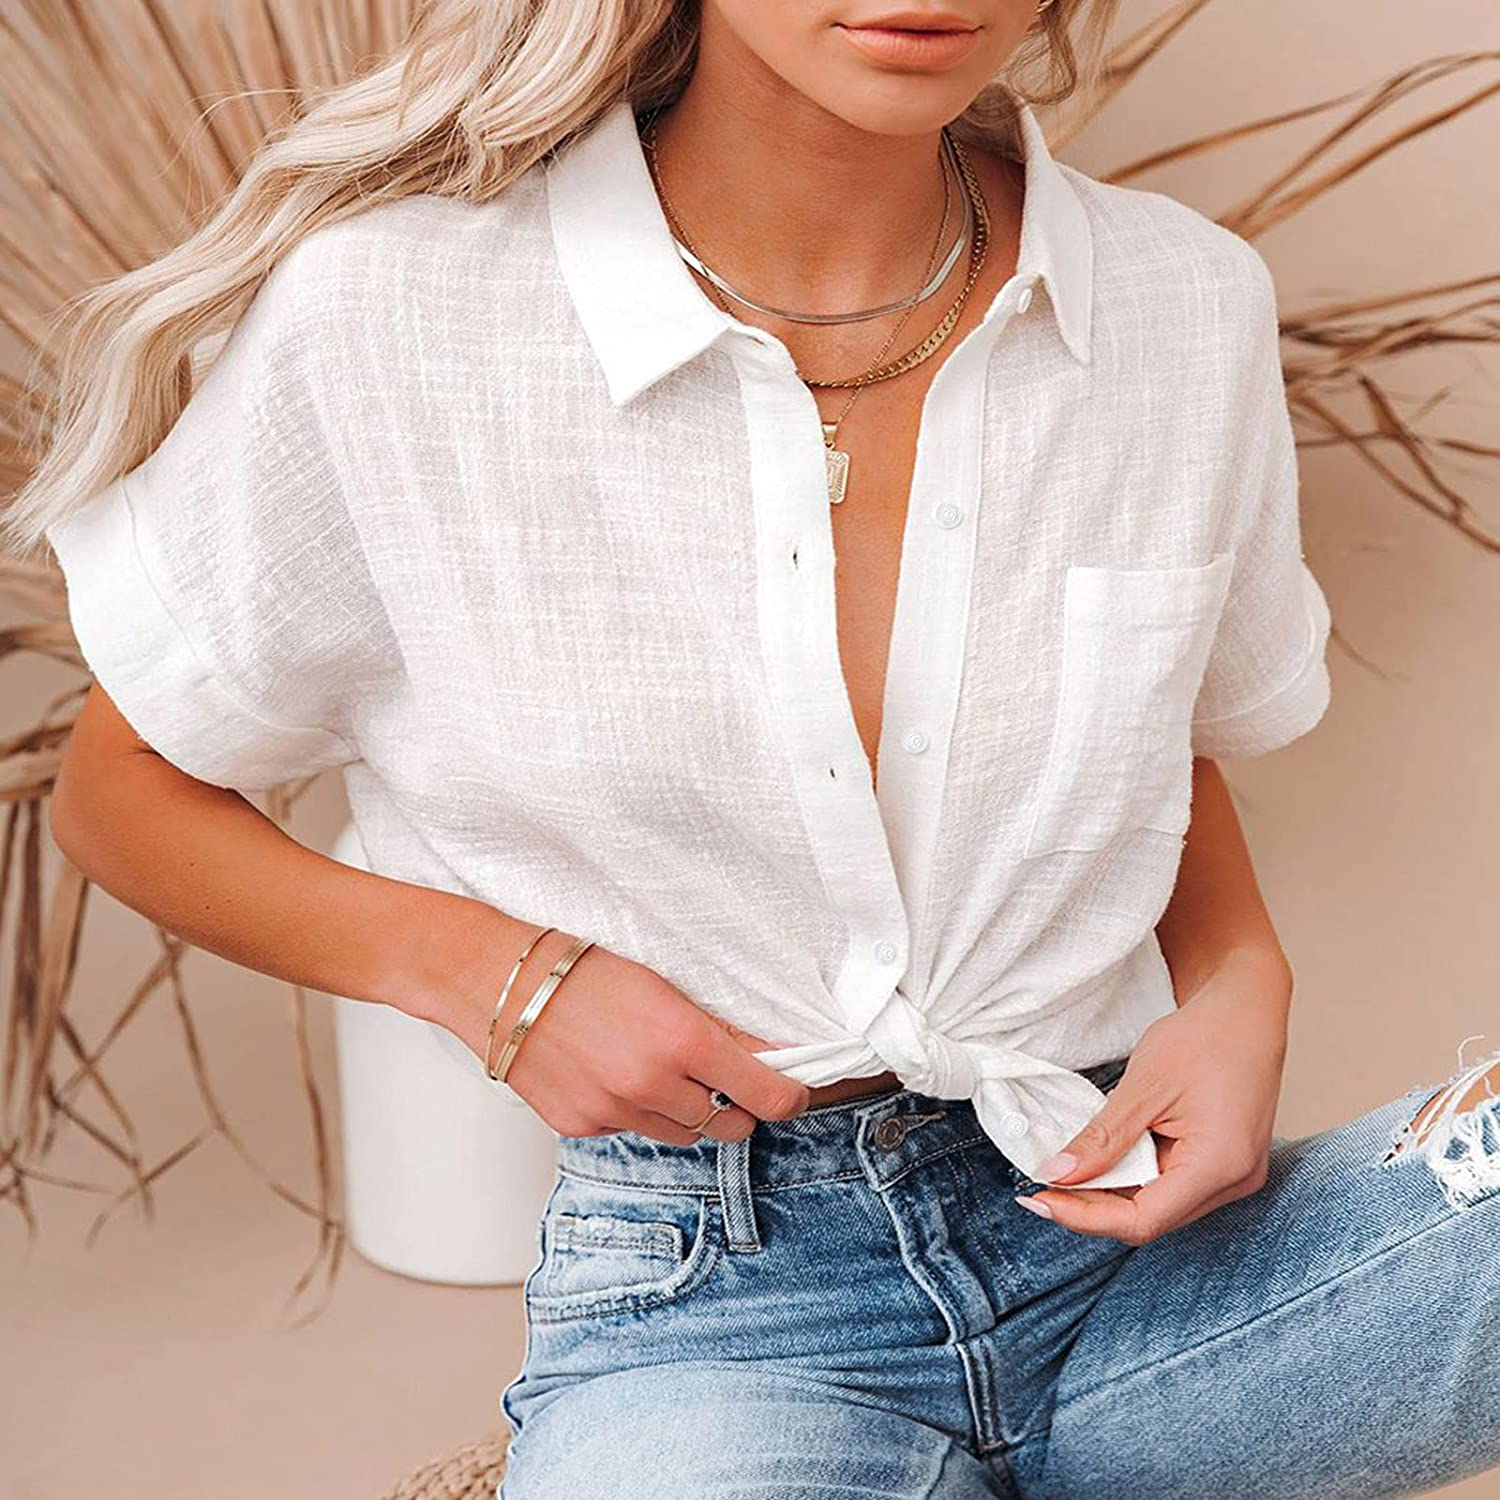 Fankle Women's Summer Casual Button-Down Shirts - V-Neck Long/Short Sleeve Business Office Plain Blouses Tops